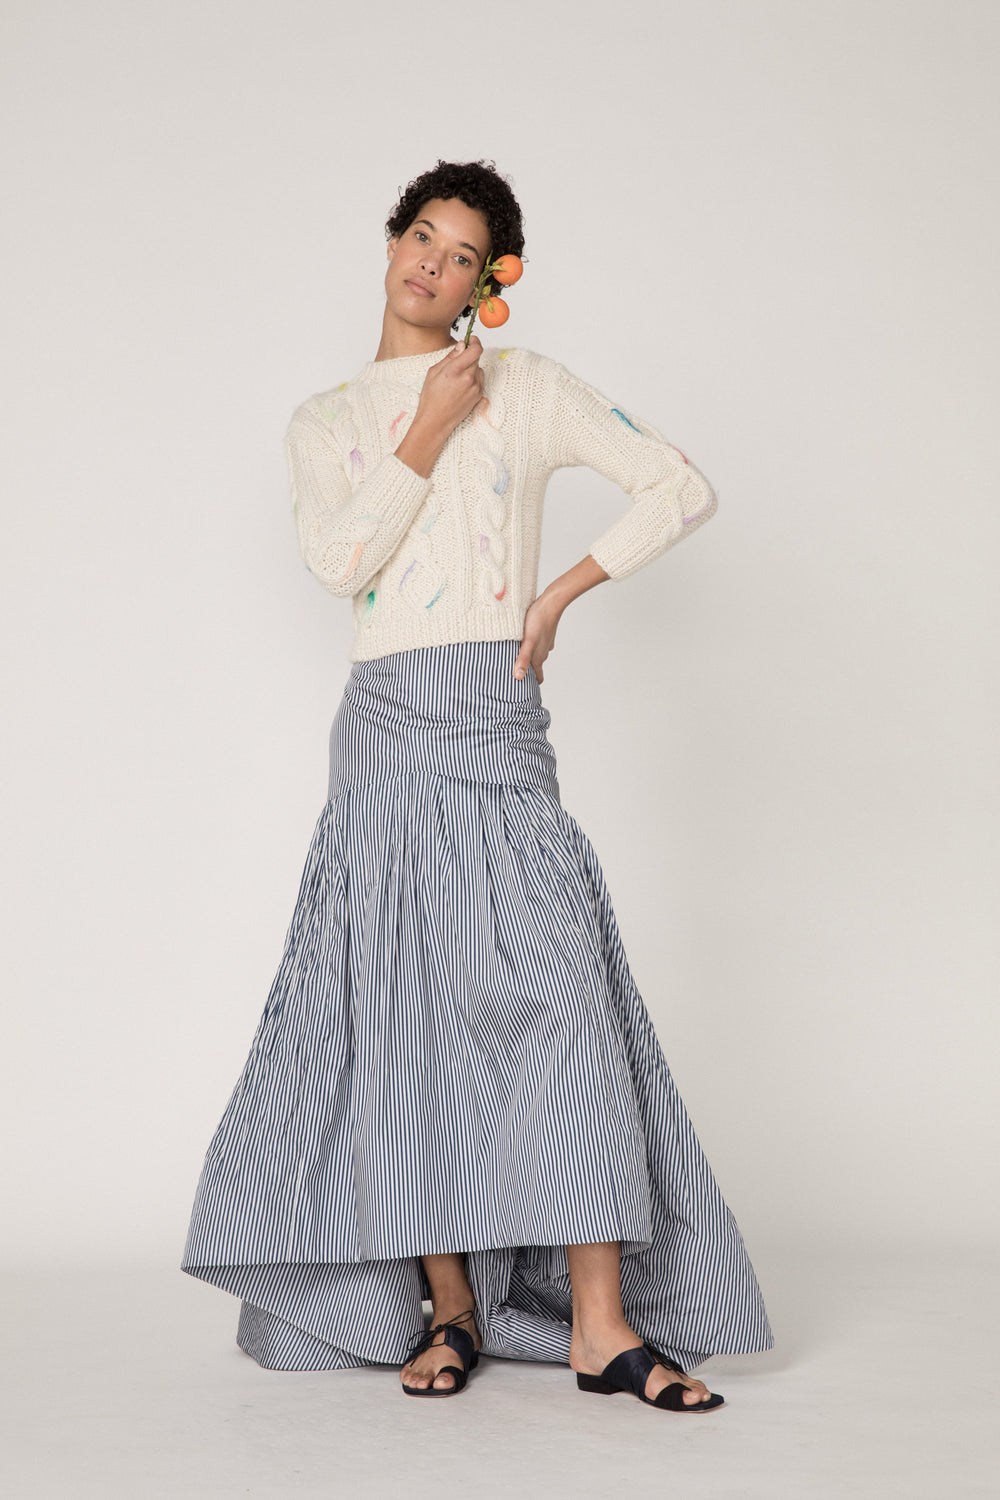 Rosie Assoulin Pre-Fall 2019 Brush Skirt. High-waisted ball skirt. High-low hemline. Dramatic flare. Ruched bottom. Navy. 100% Cotton. Sizes 0 - 12.